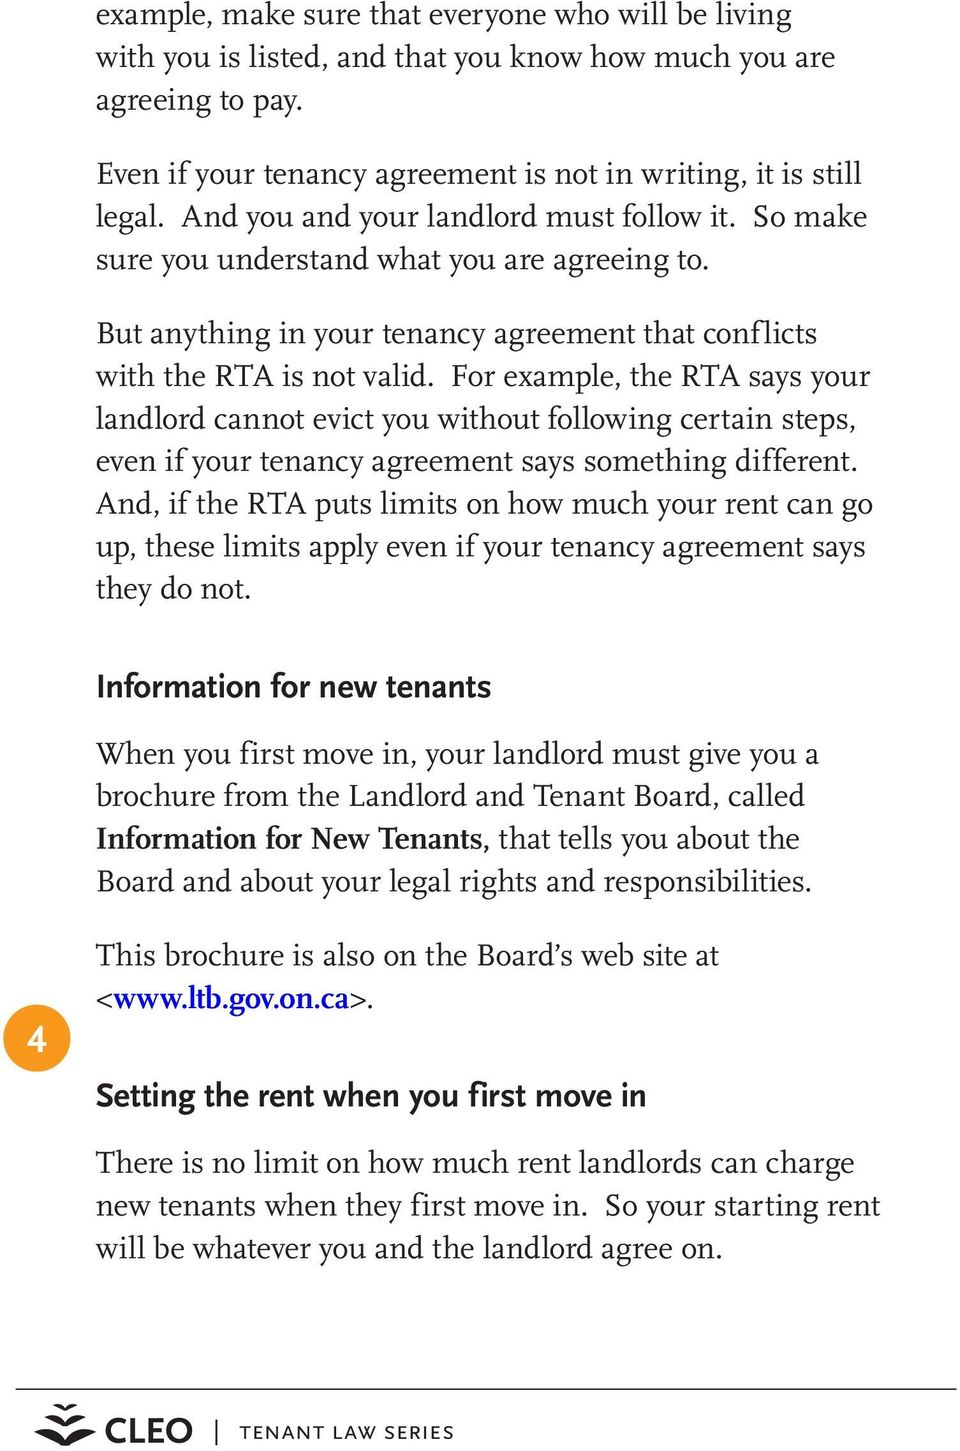 For example, the RTA says your landlord cannot evict you without following certain steps, even if your tenancy agreement says something different.